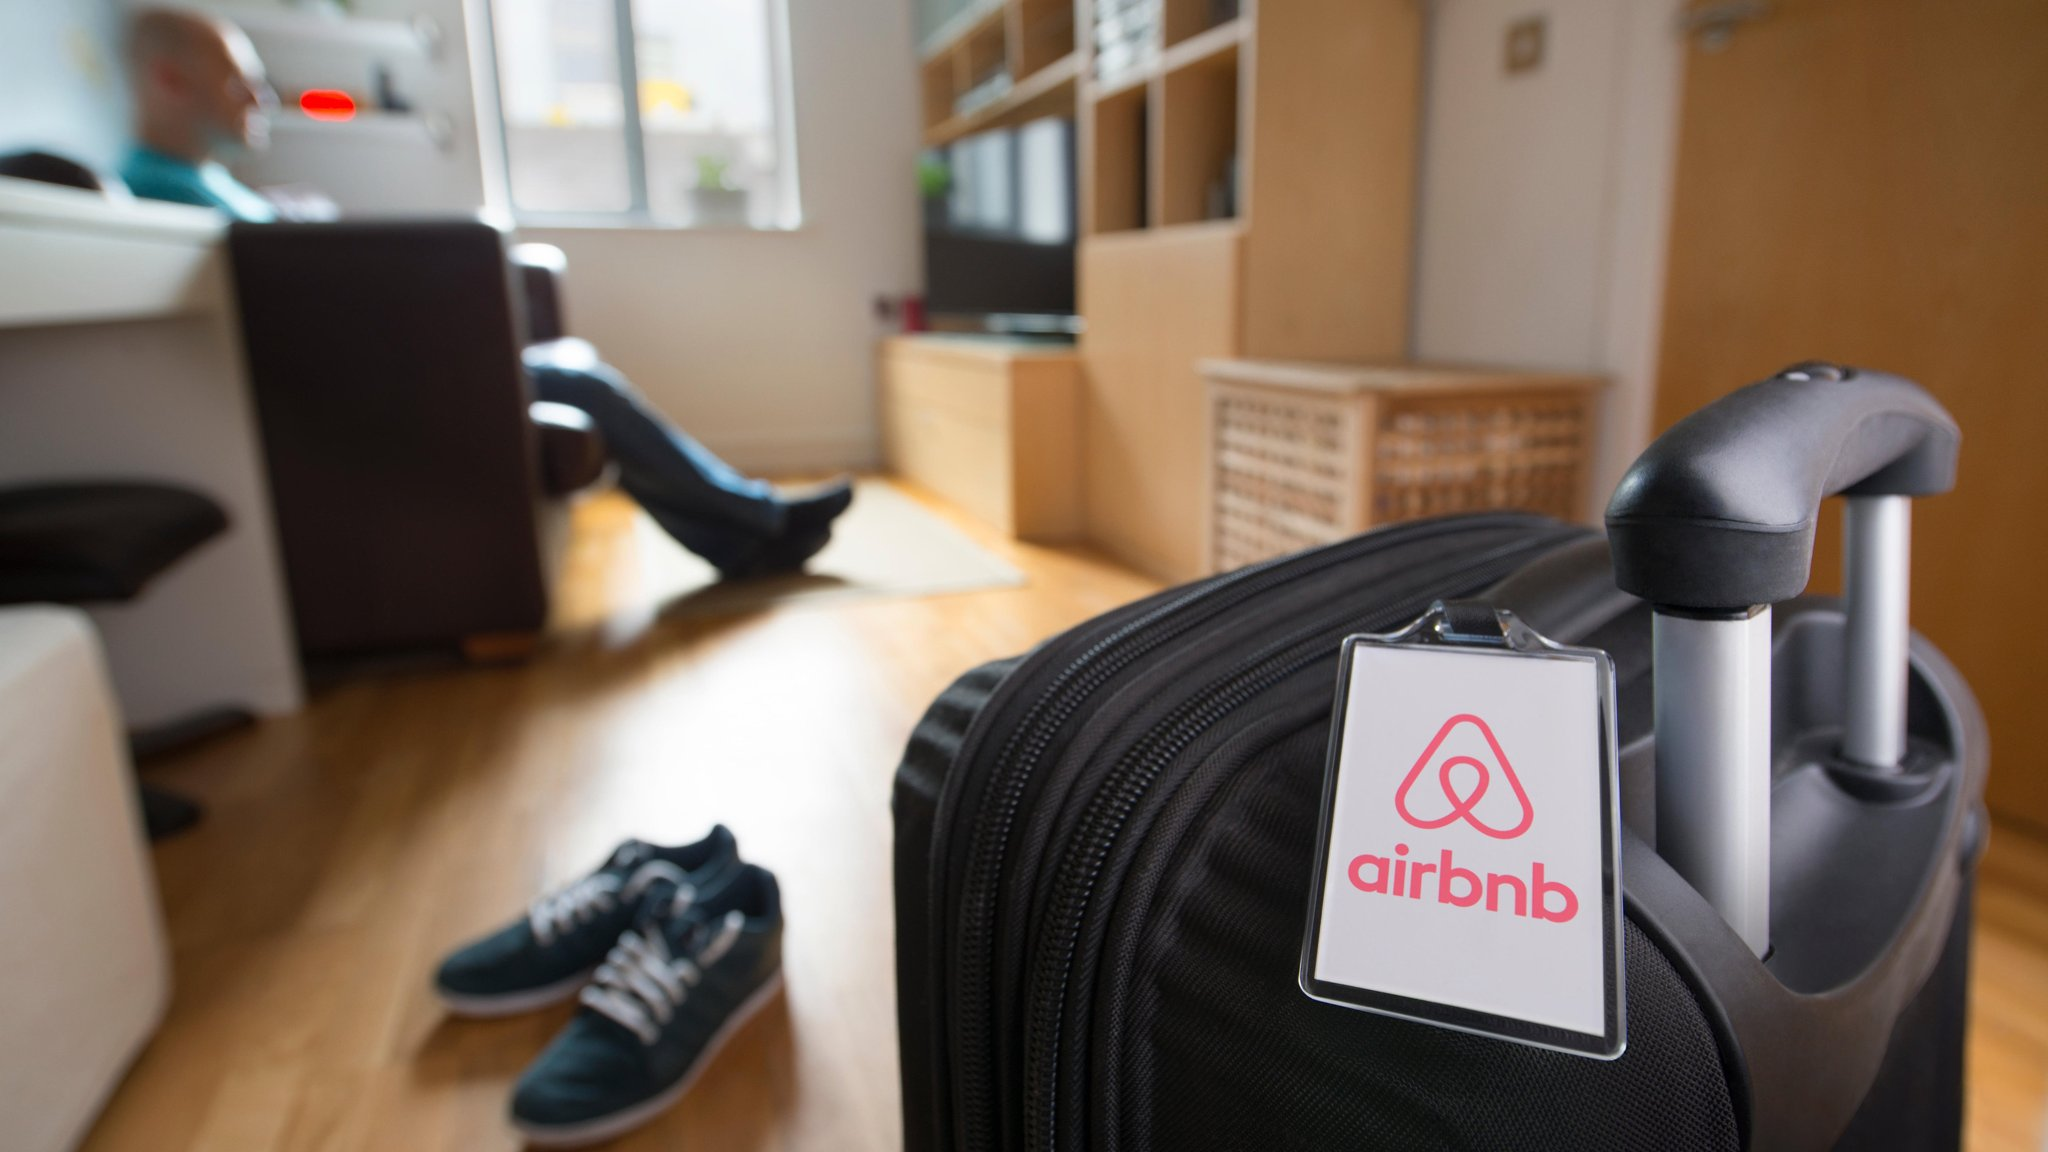 Airbnb Paris 17 Airbnb Faces Tighter Controls In France From Hotel Lobby